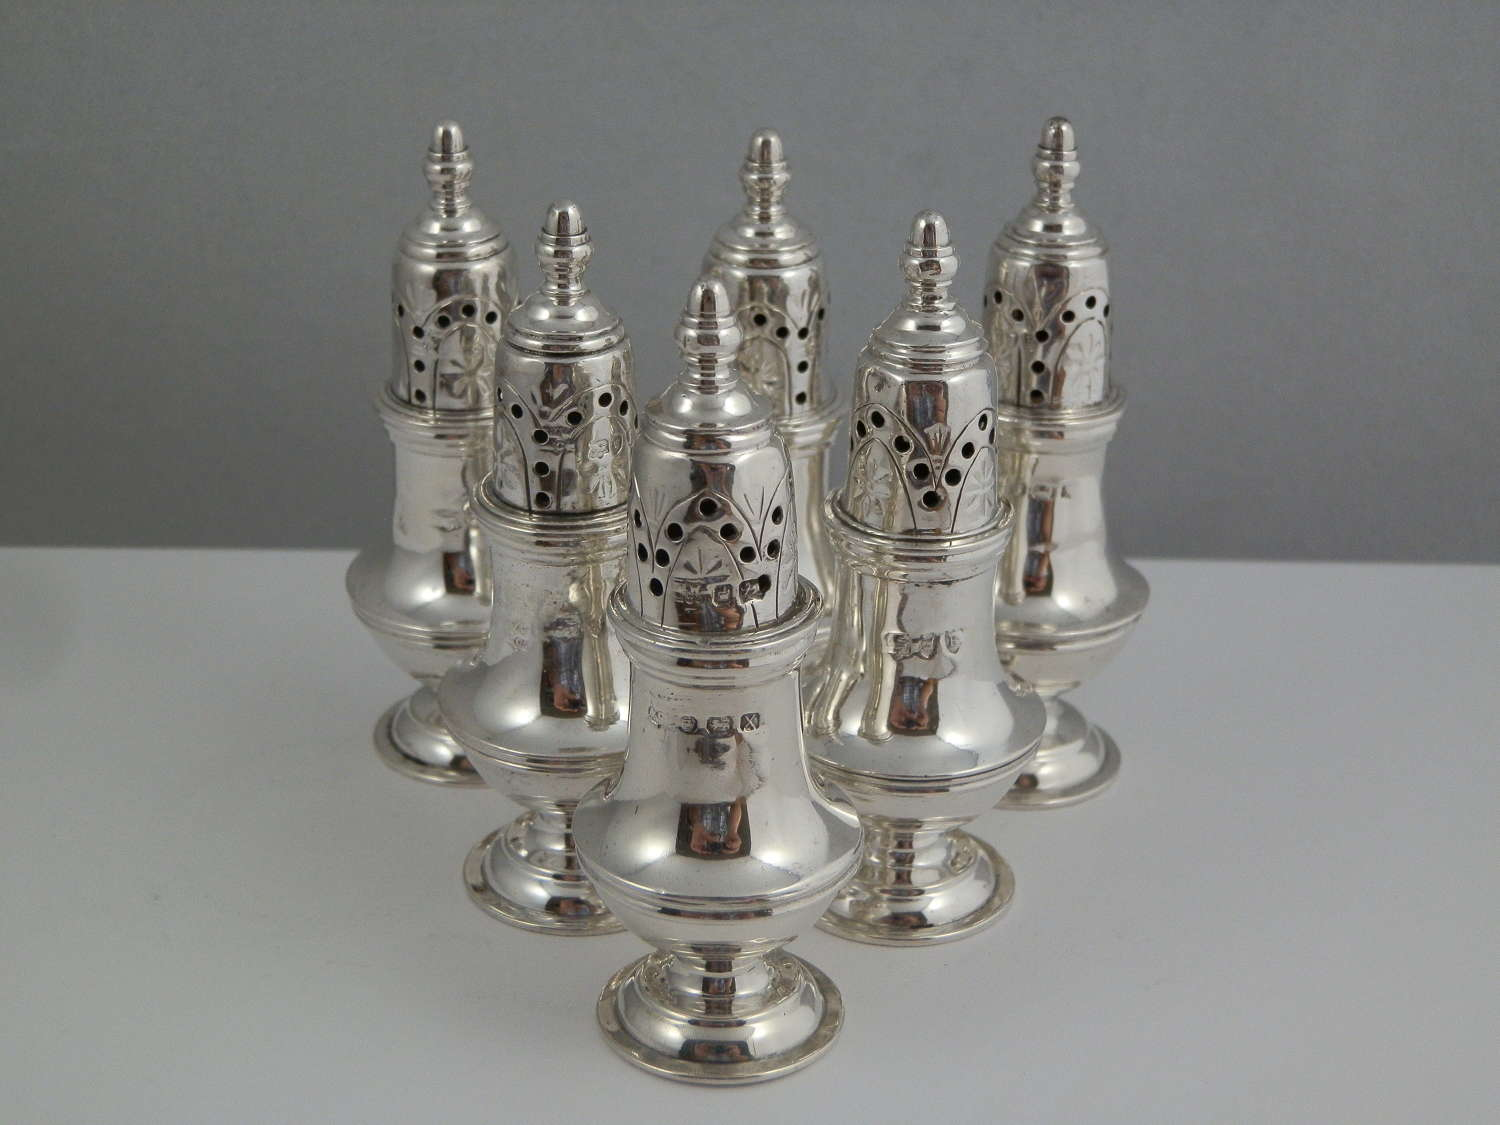 Set of 6 Victorian silver pepper pots, London 1890